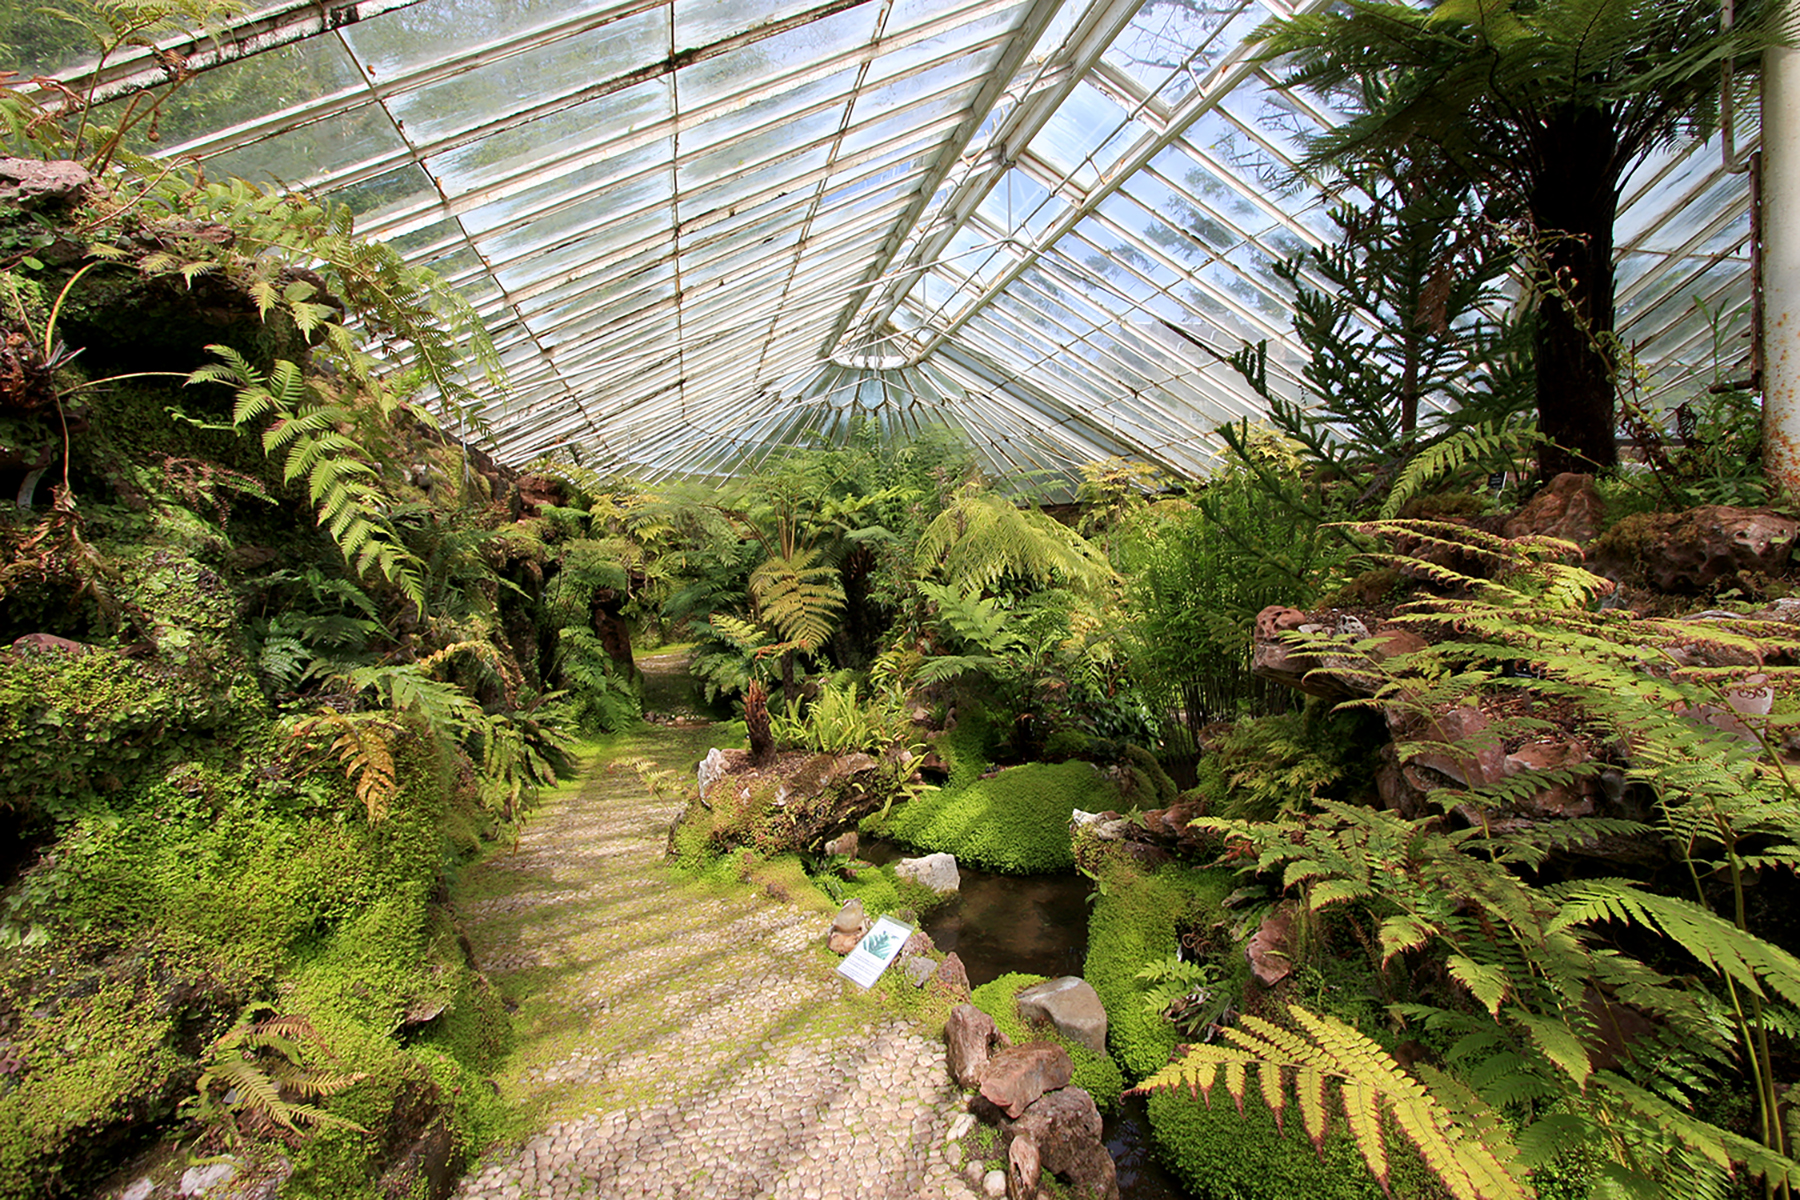 Ascog Hall Victorian Fernery, Isle of Bute, Scotland